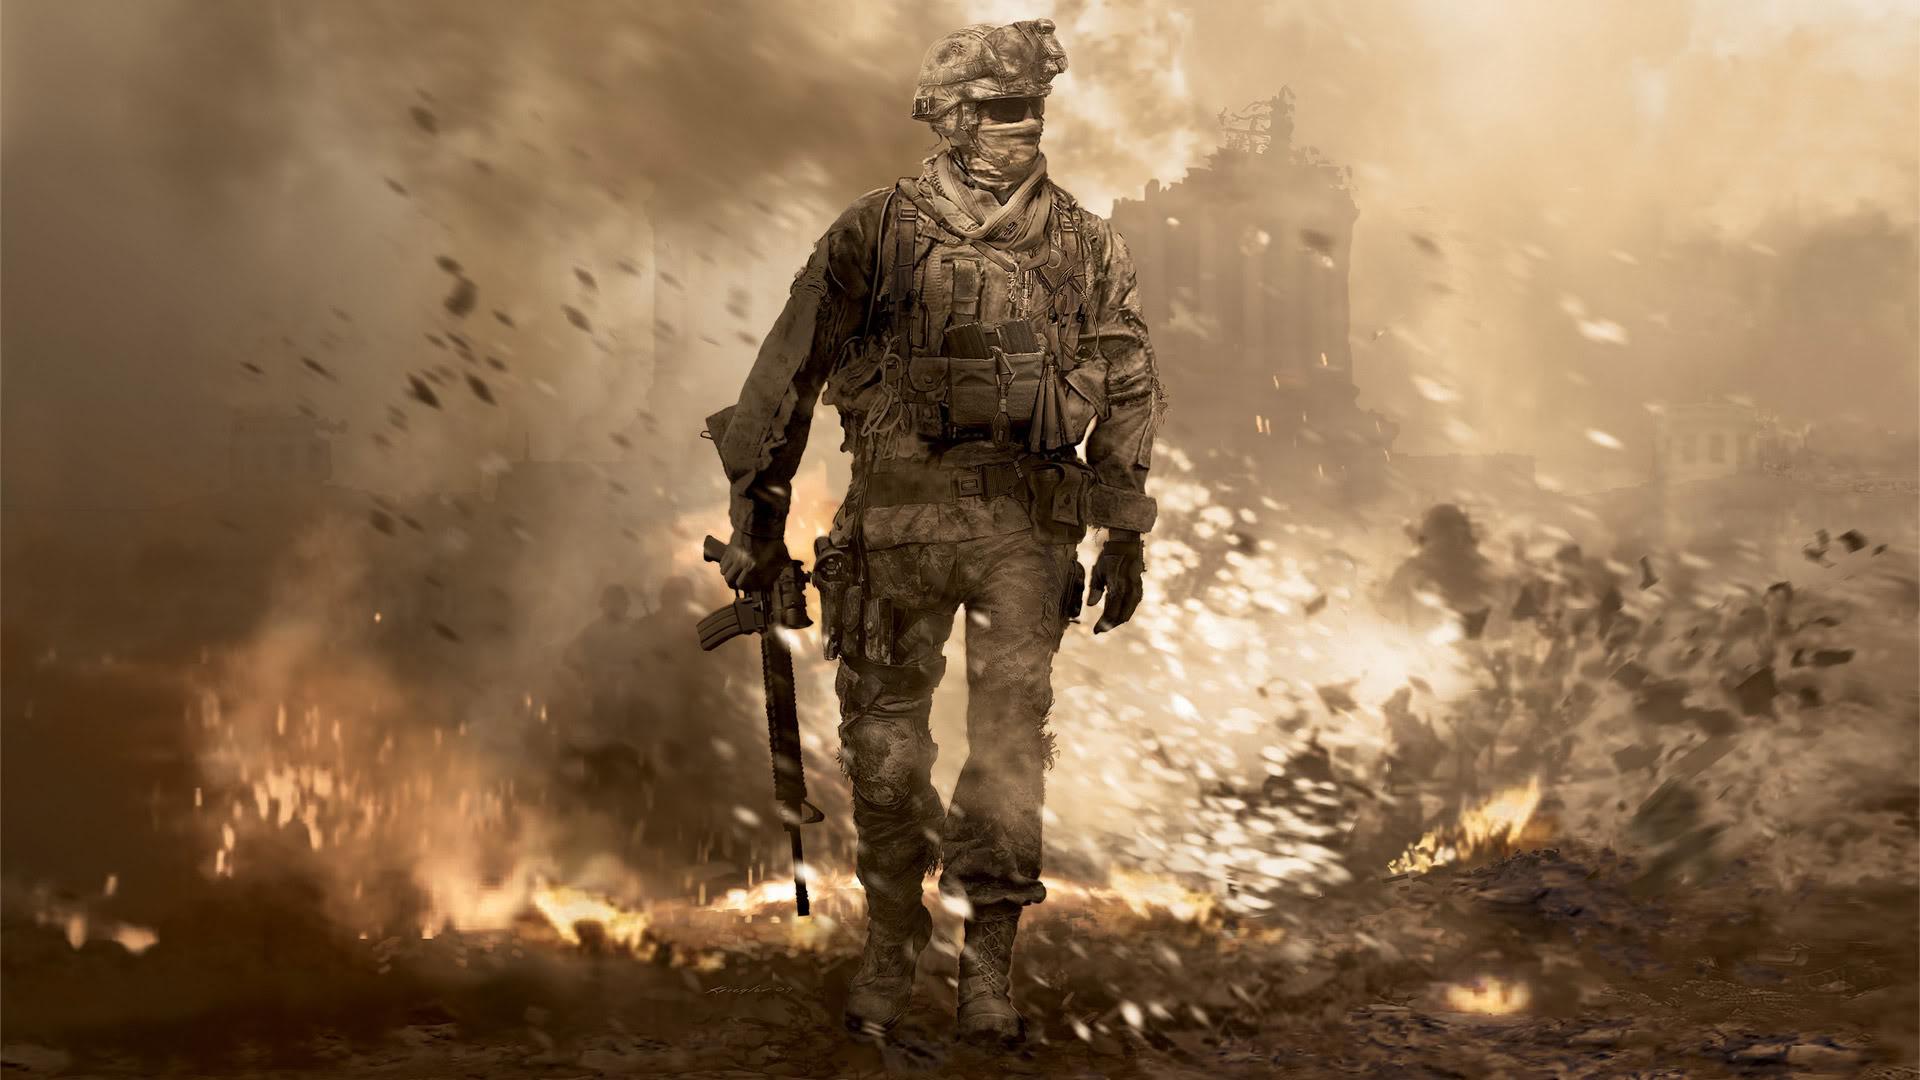 Best Video Game Wallpapers